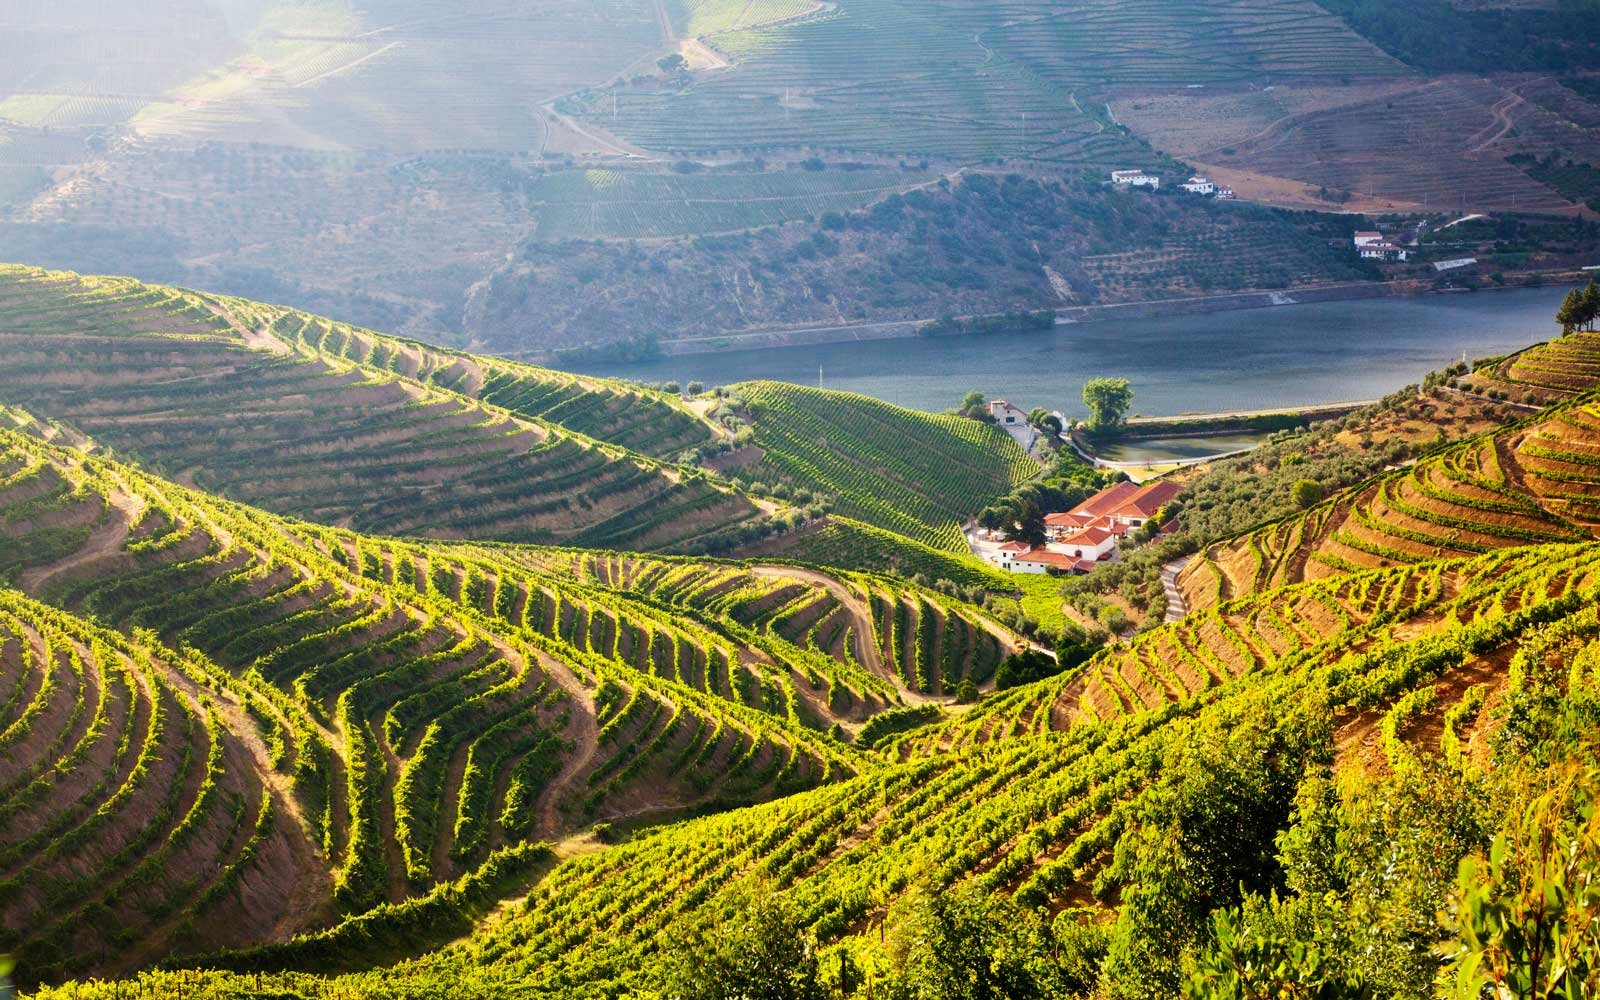 Terraced Vineyards lining the hills of the Duoro Valley, Portugal